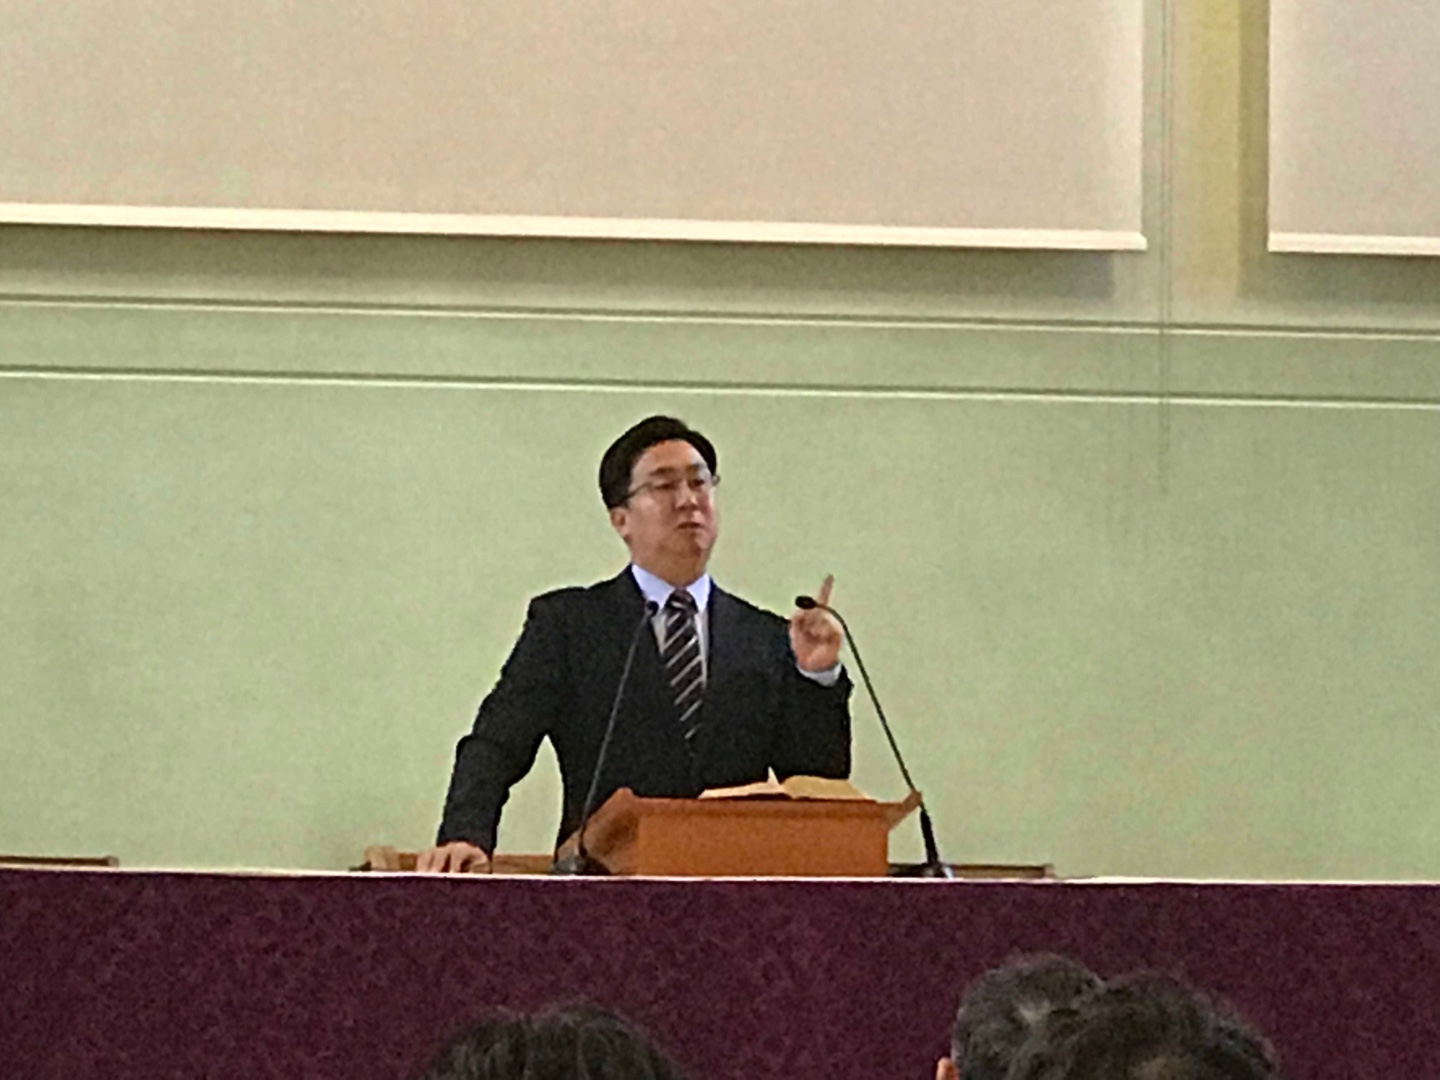 784A5A72-8658-4B85-88BB-D0DF2CB67104.jpeg